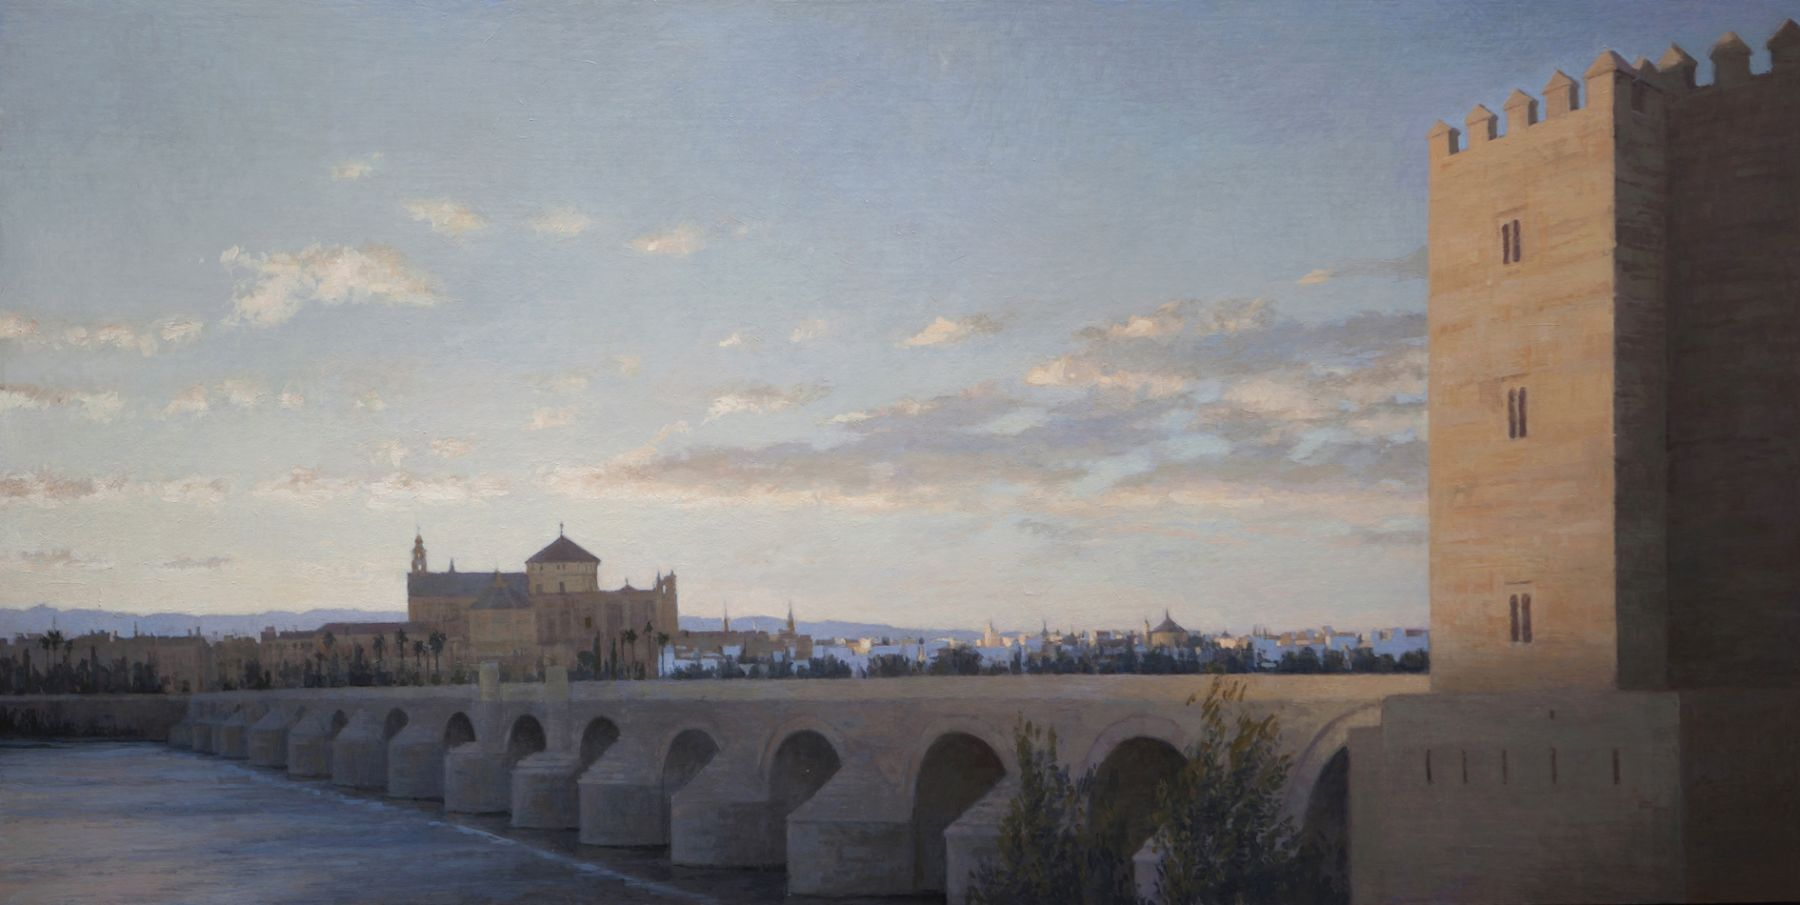 guillermo munoz vera, The Calahorra Tower, 2013, oil on canvas mounted on panel, 29 1/2 x 59 inches